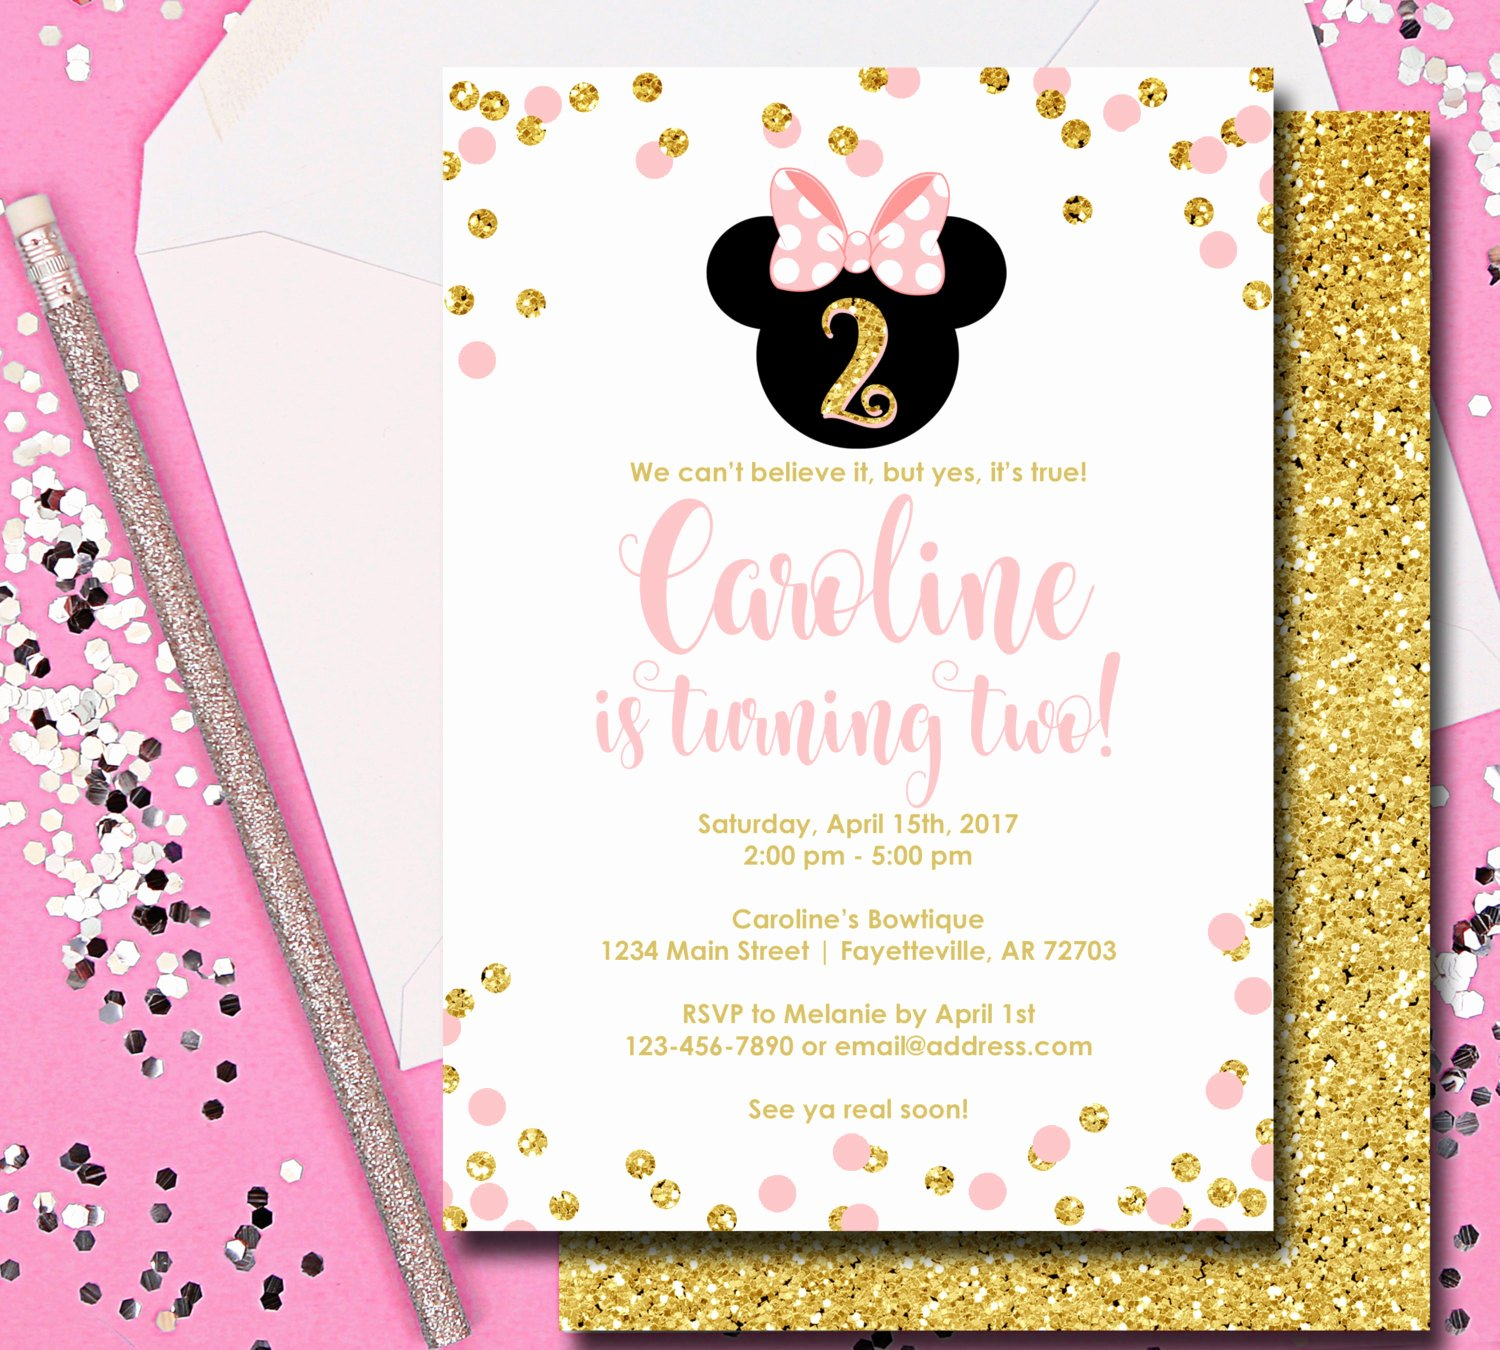 Minnie Mouse Party Invitations Luxury Minnie Mouse Invitation Minnie Mouse Birthday Invitation